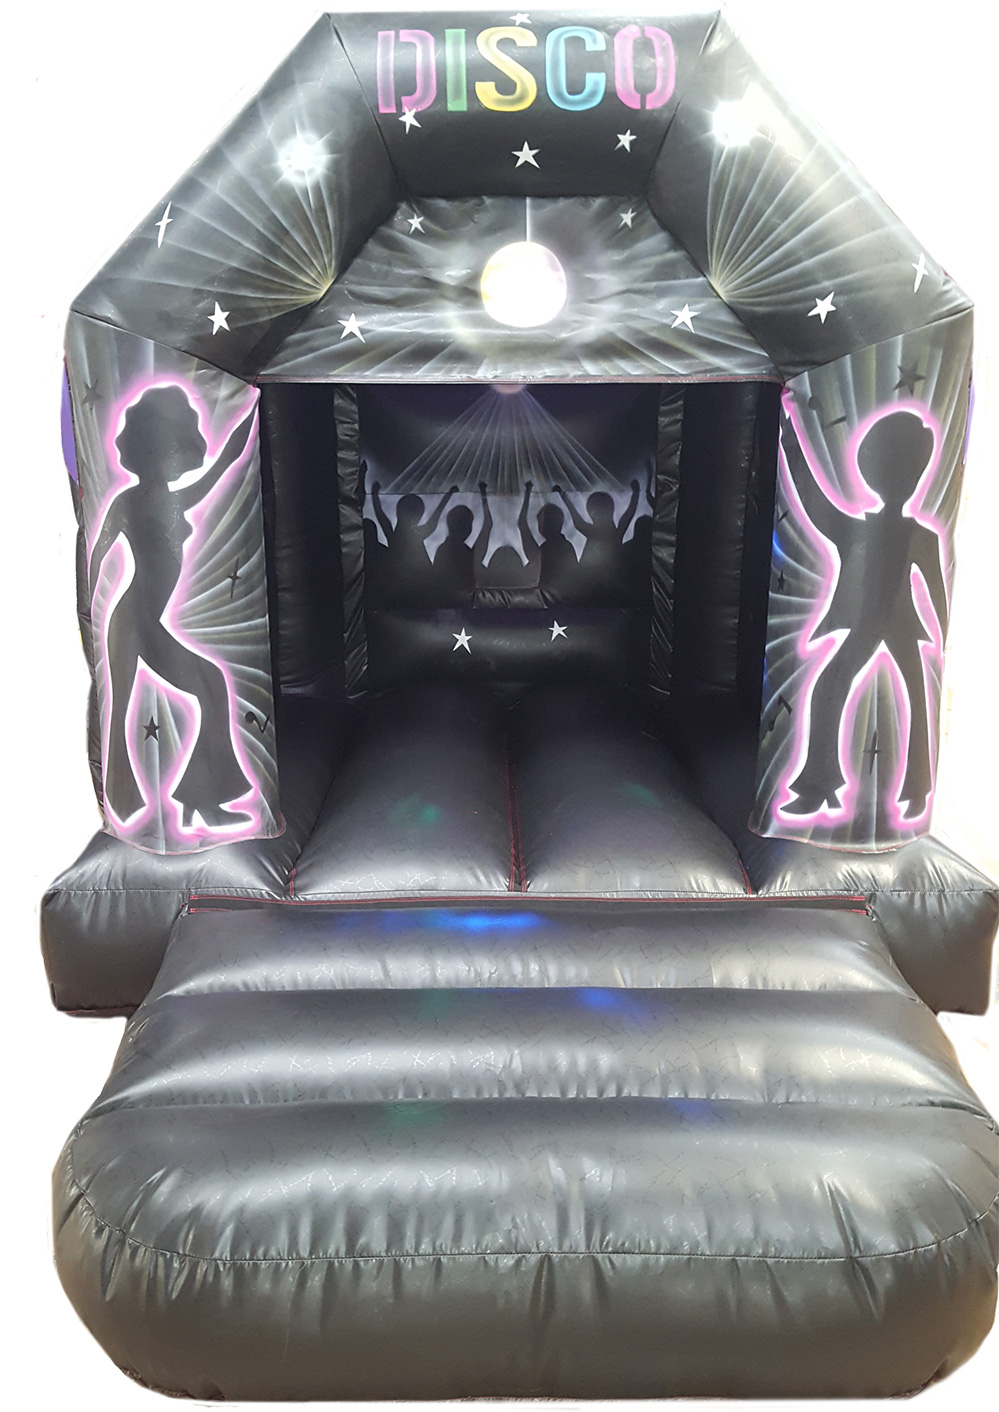 Bouncy Castle Sales - BC557 - Bouncy Inflatable for sale